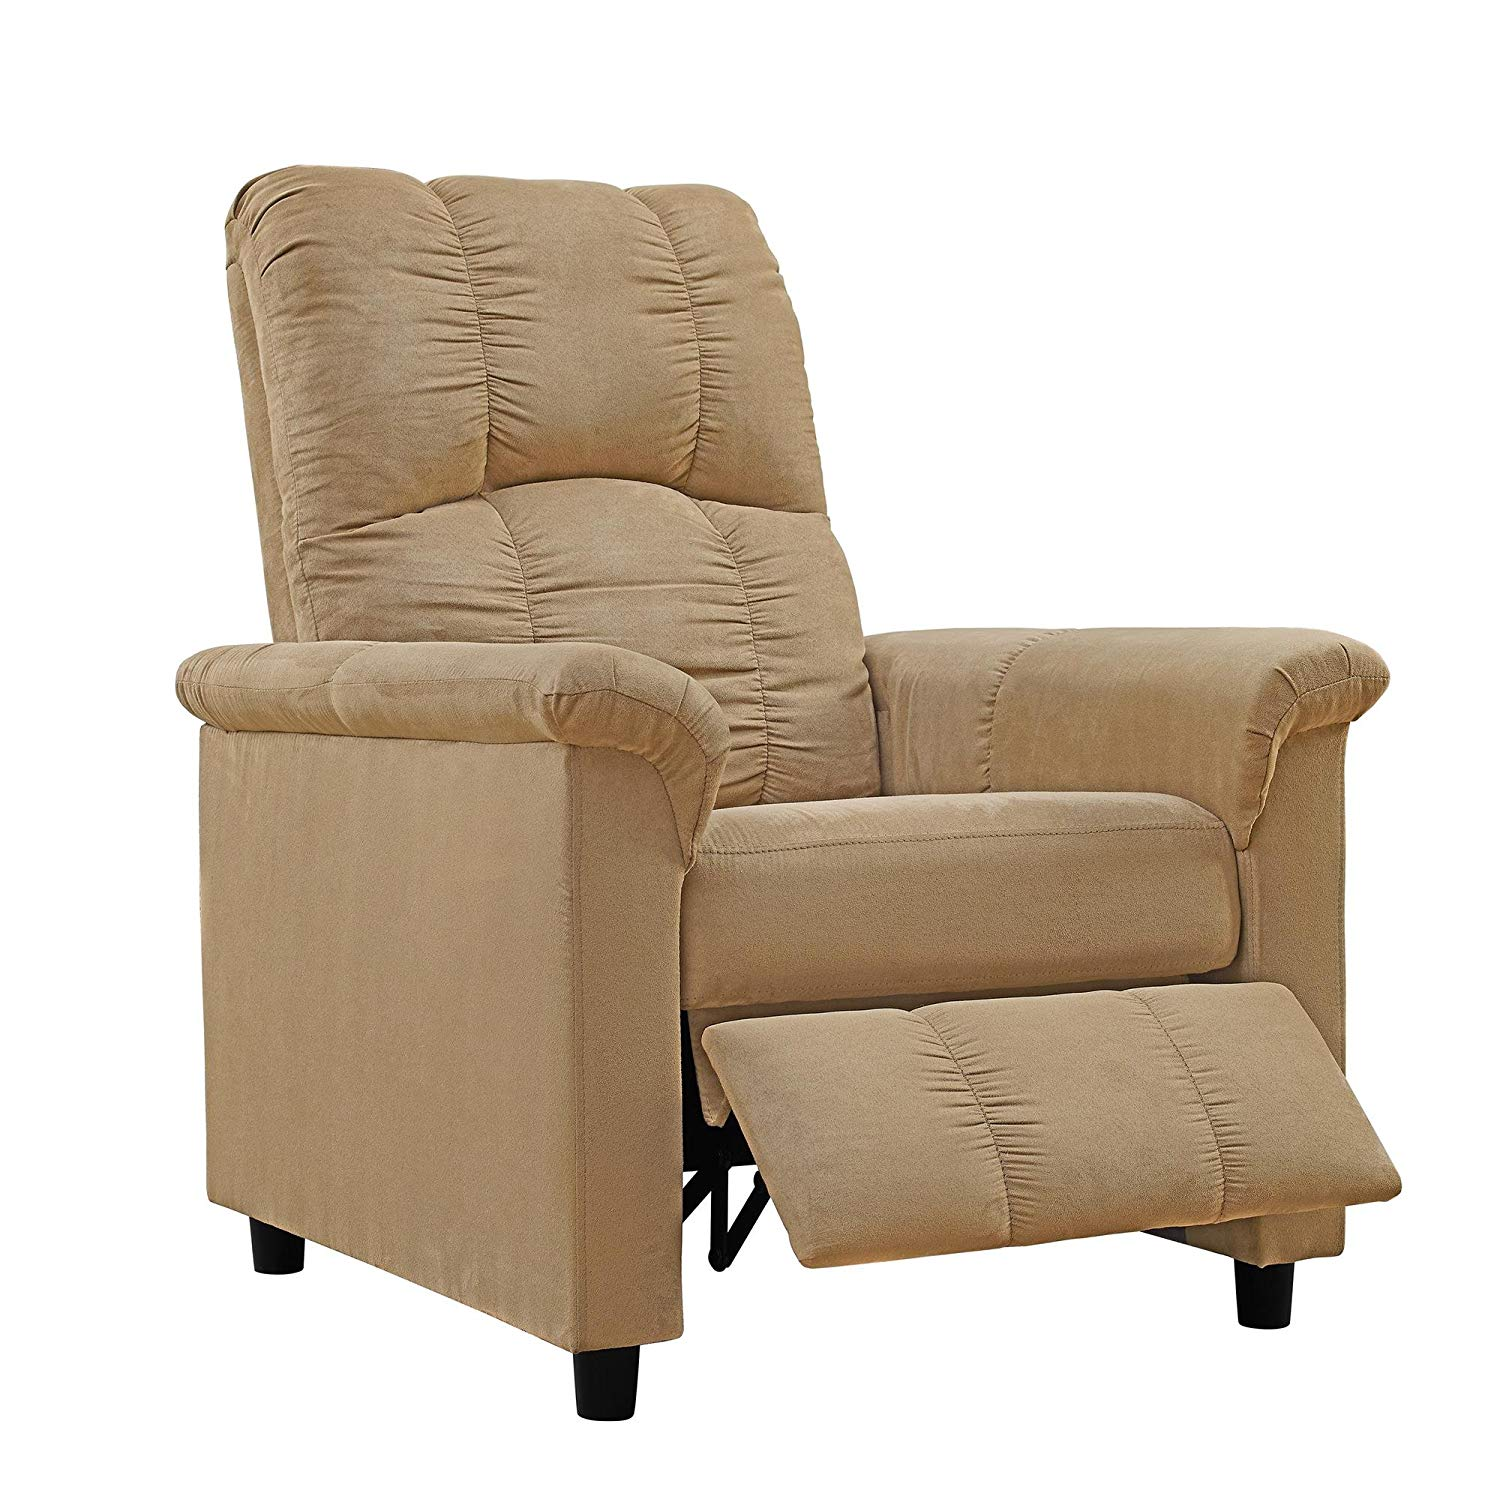 sofa reviews consumer reports 2 seater leather power recliner chairs droughtrelief org